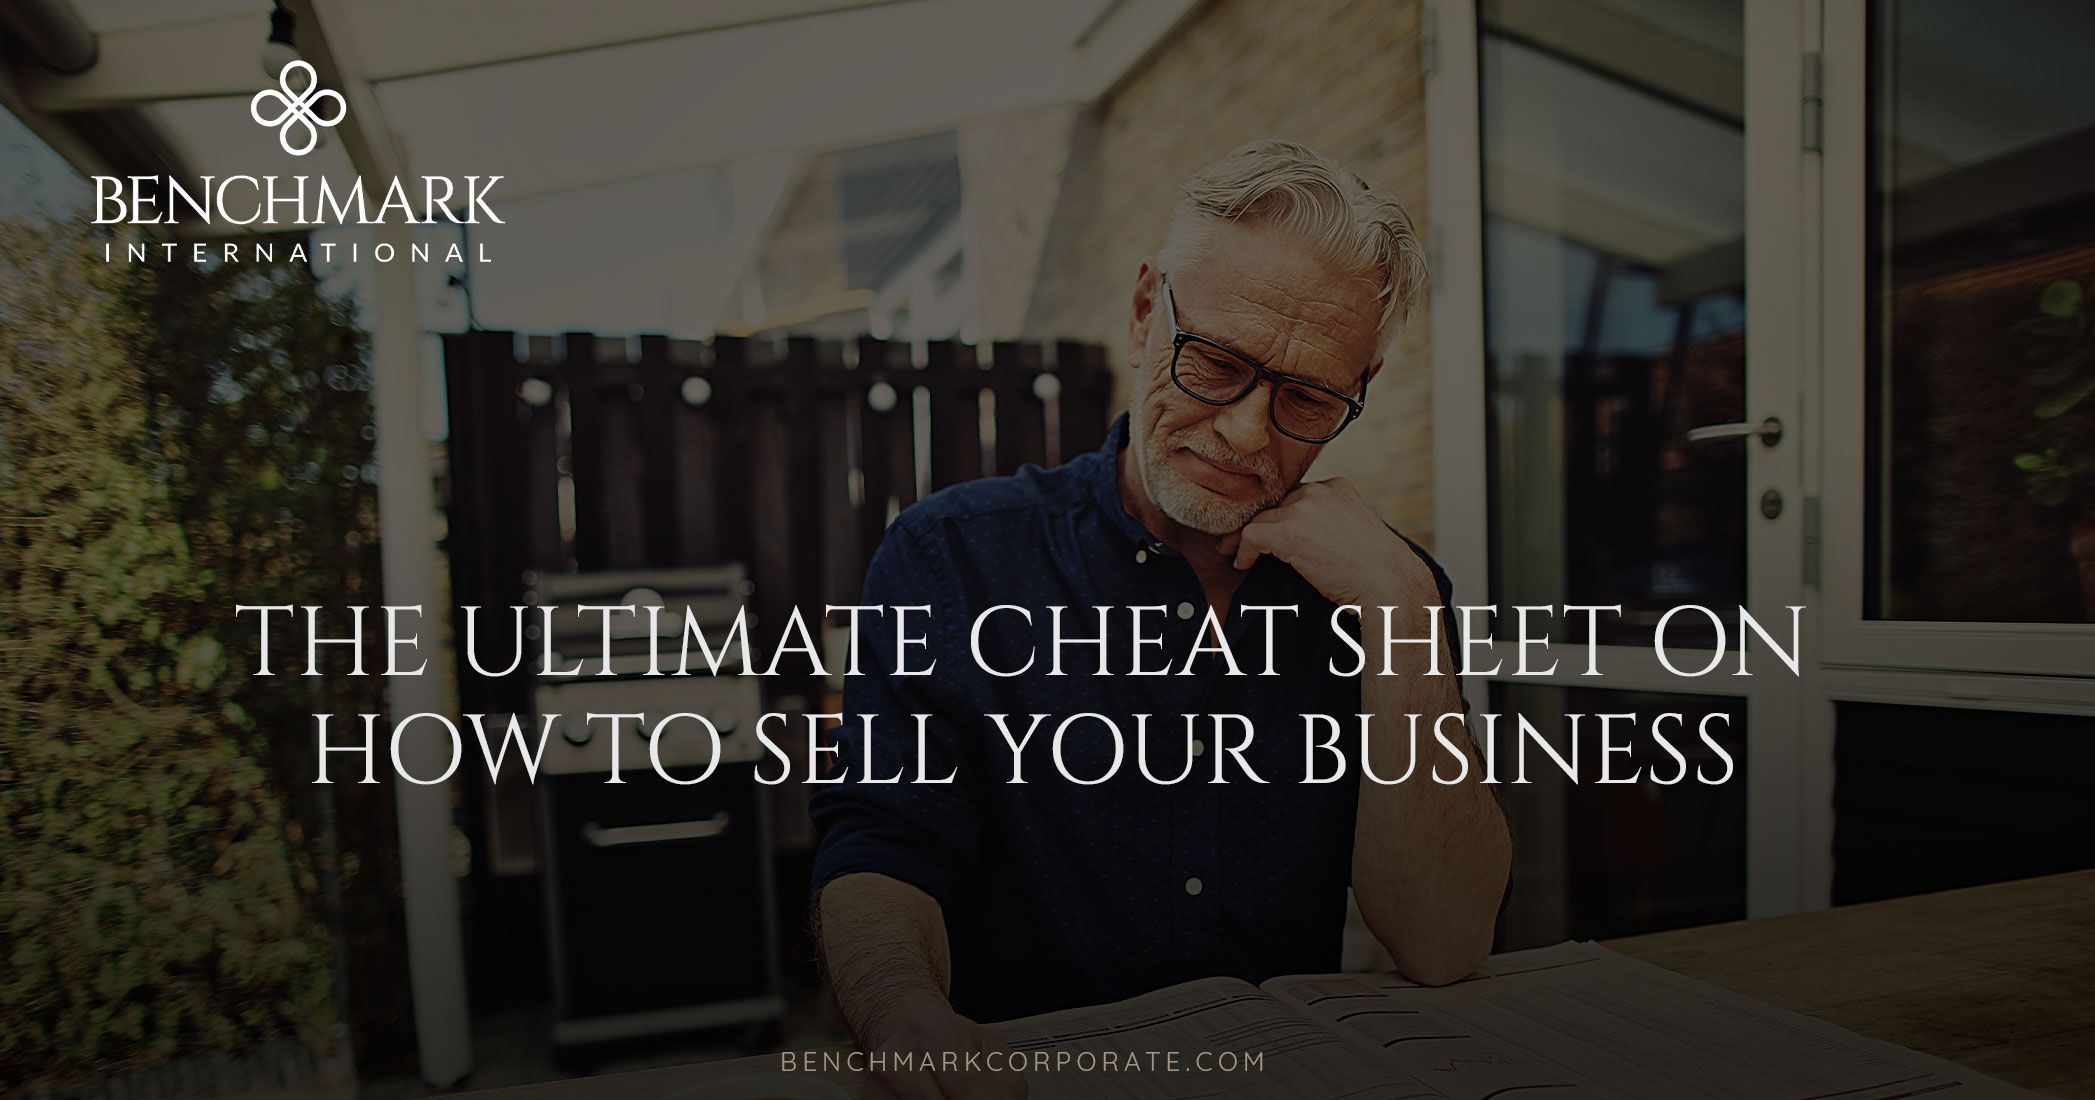 The Ultimate Cheat Sheet On How To Sell Your Business